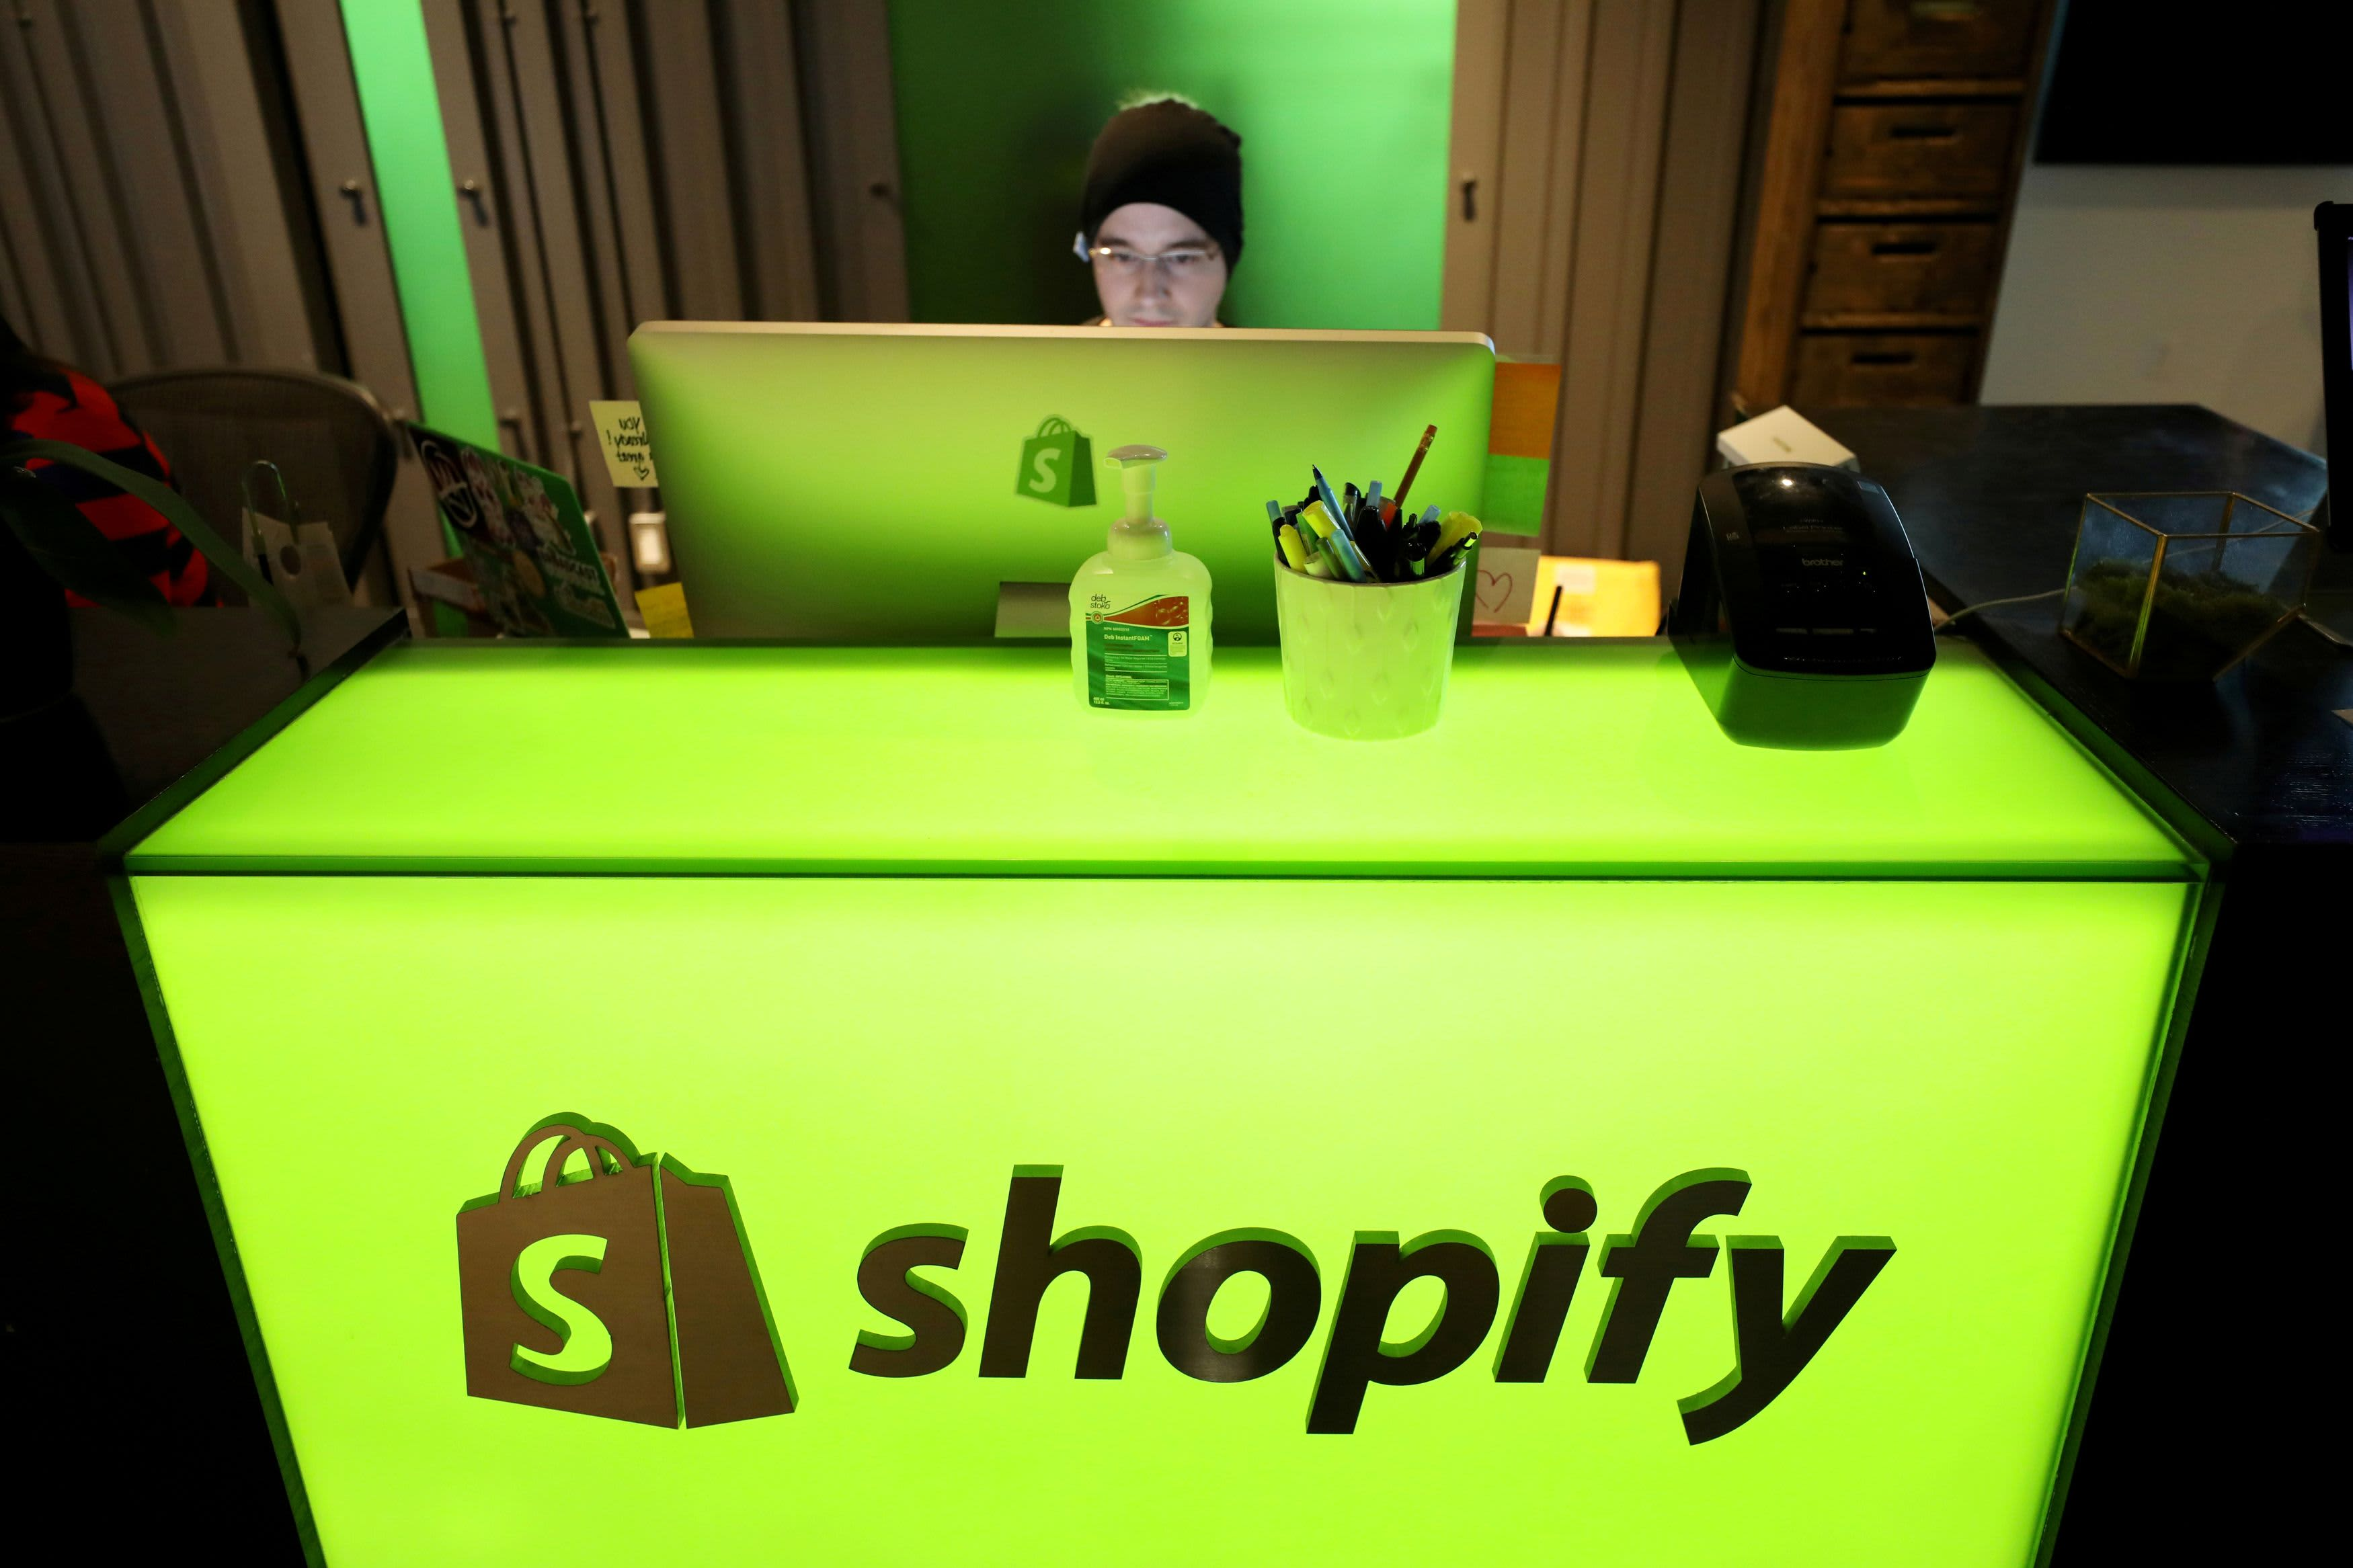 Shopify surges after e-commerce boom fuels big earnings beat – CNBC